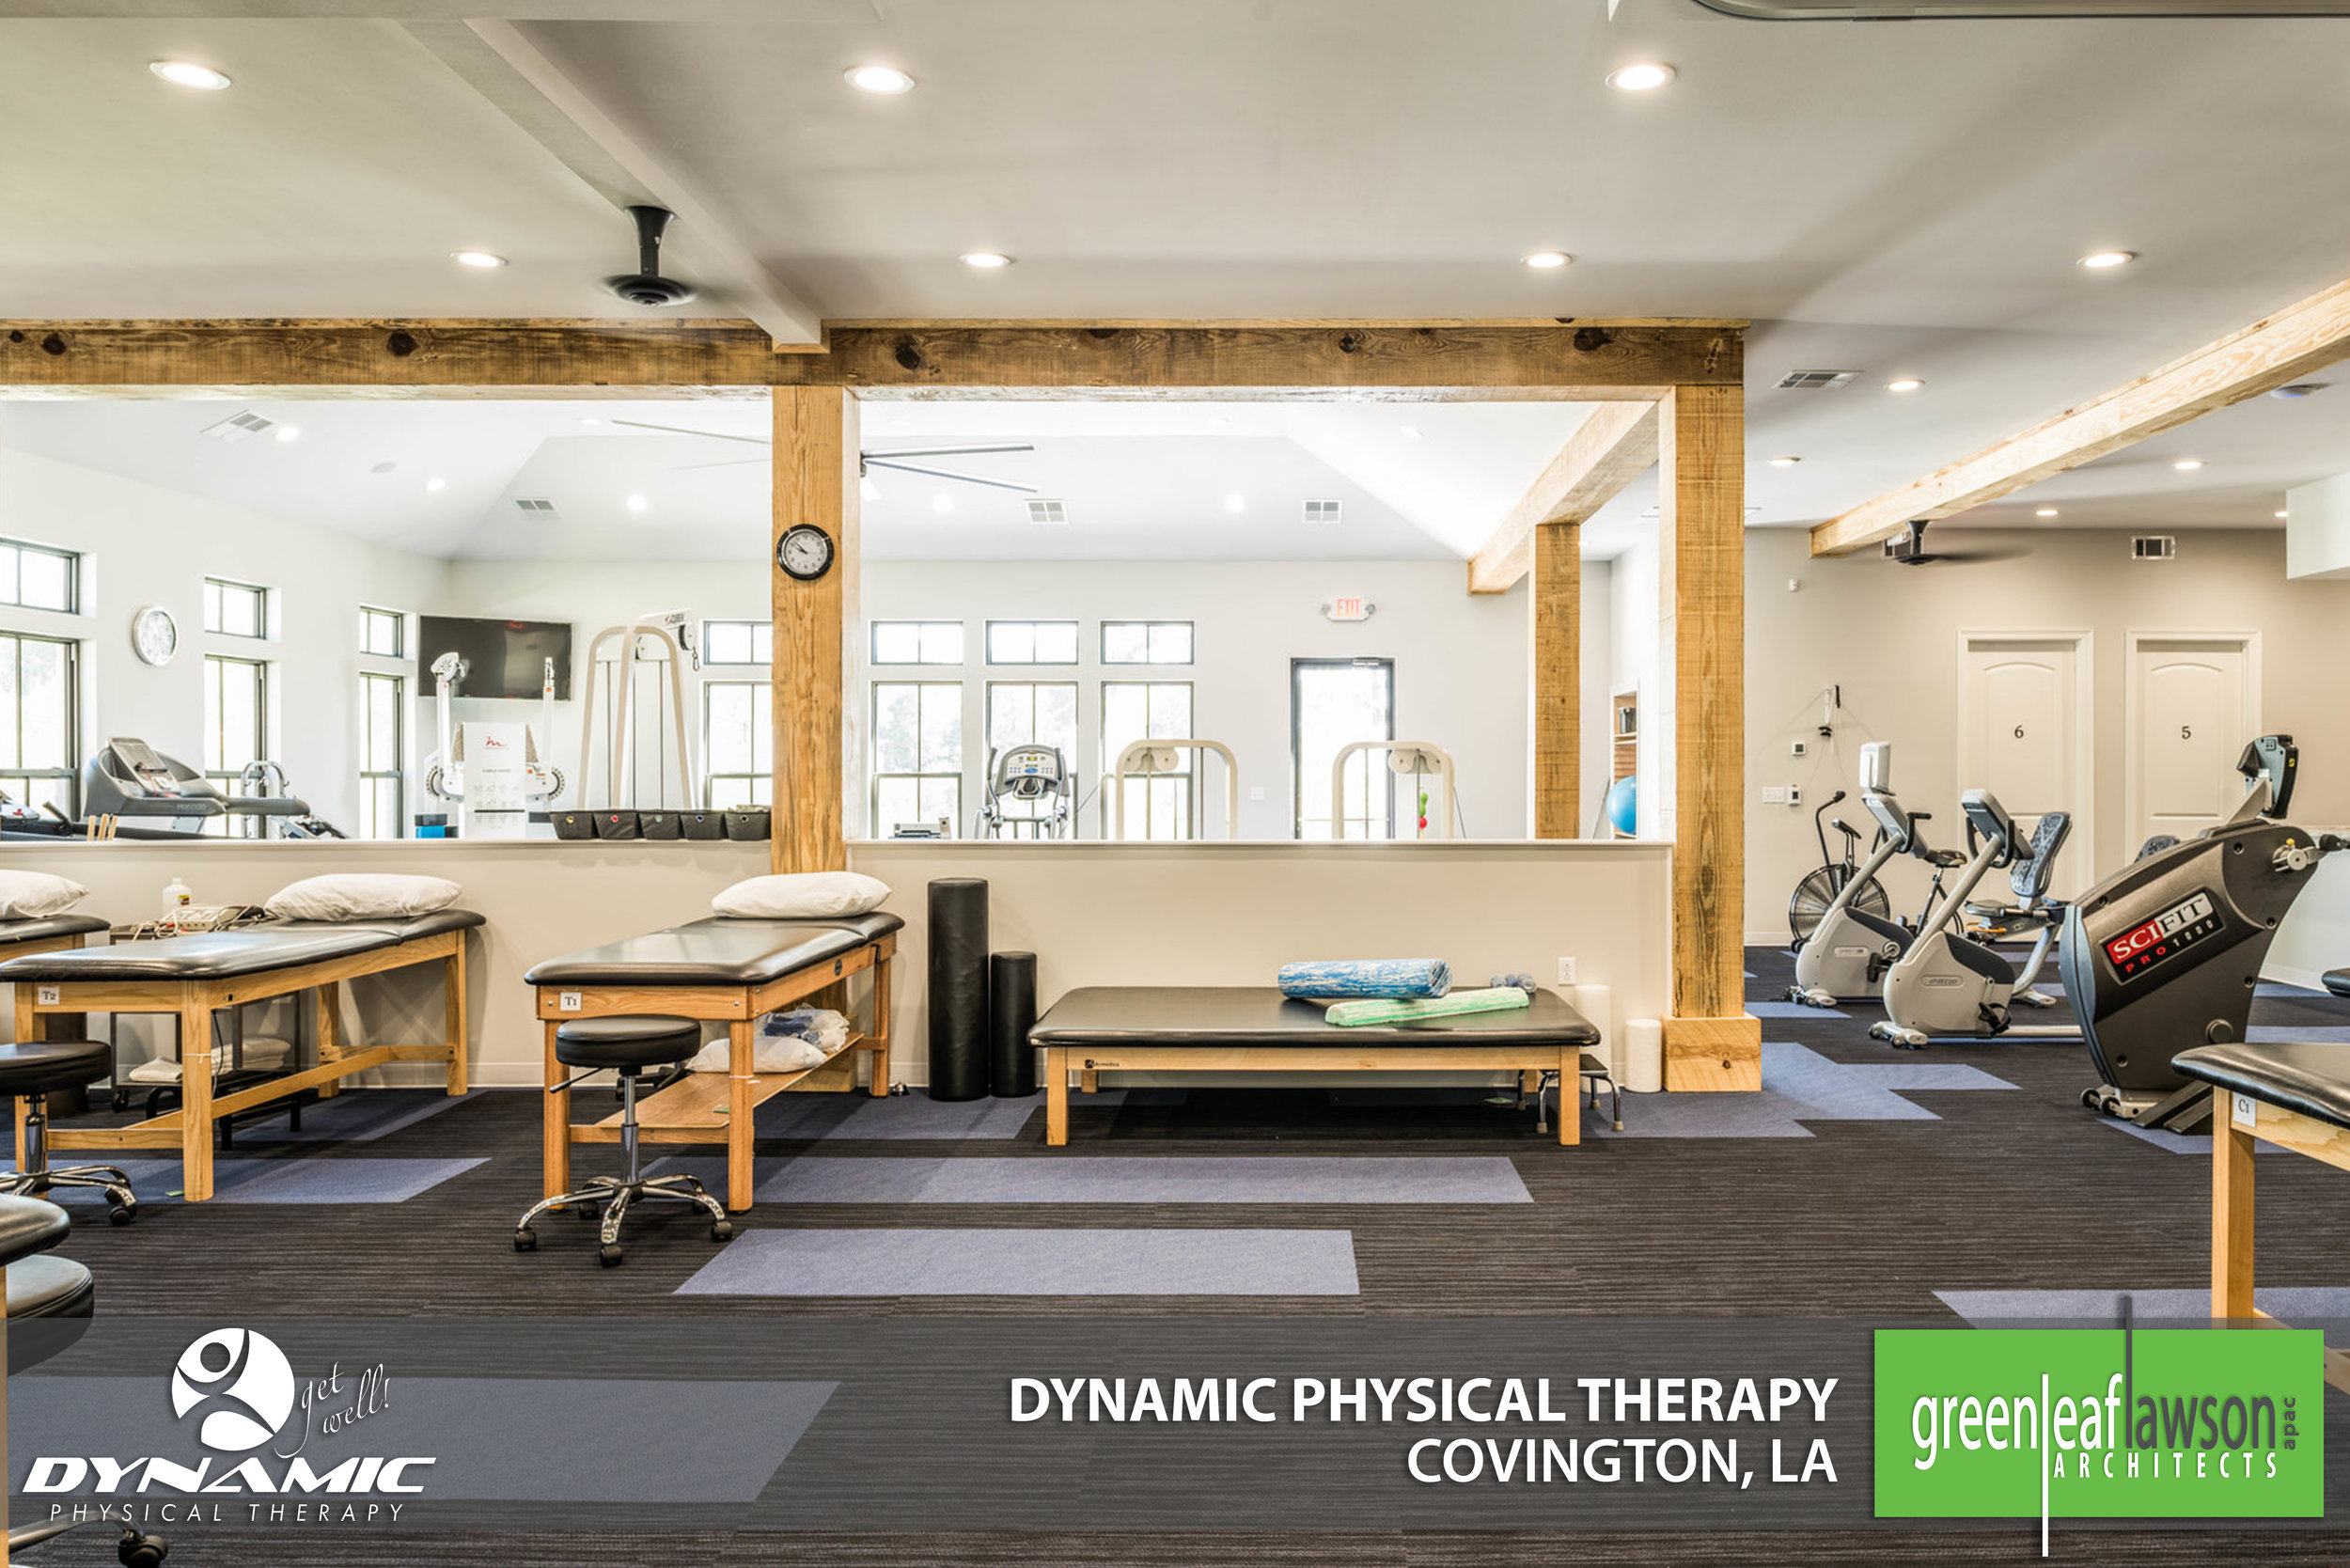 Dynamic Physical Therapy 3.jpg